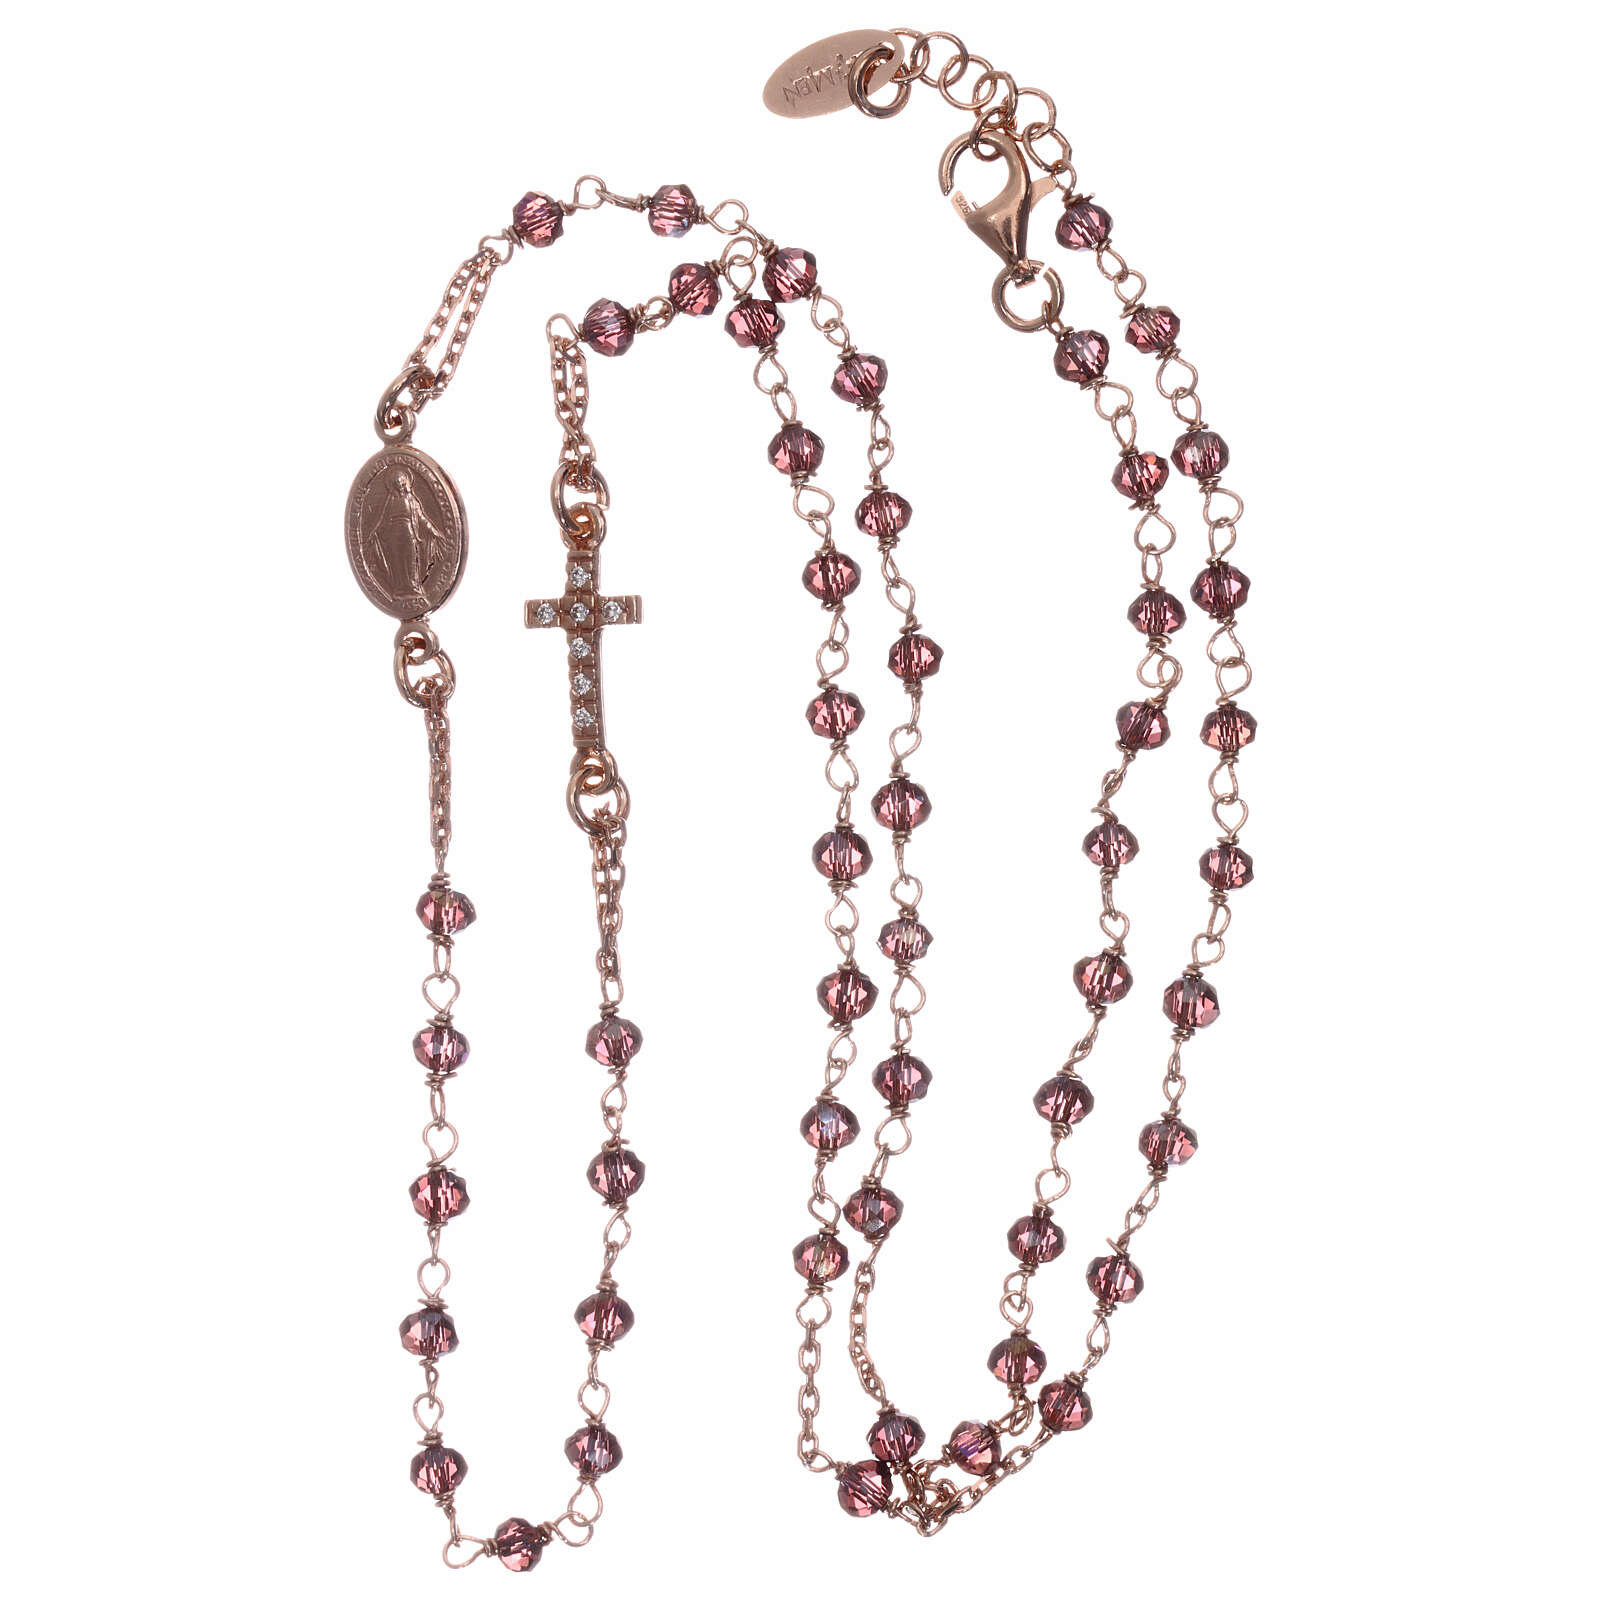 AMEN rosary choker 925 silver with rosé finish violet crystals white zircons 4